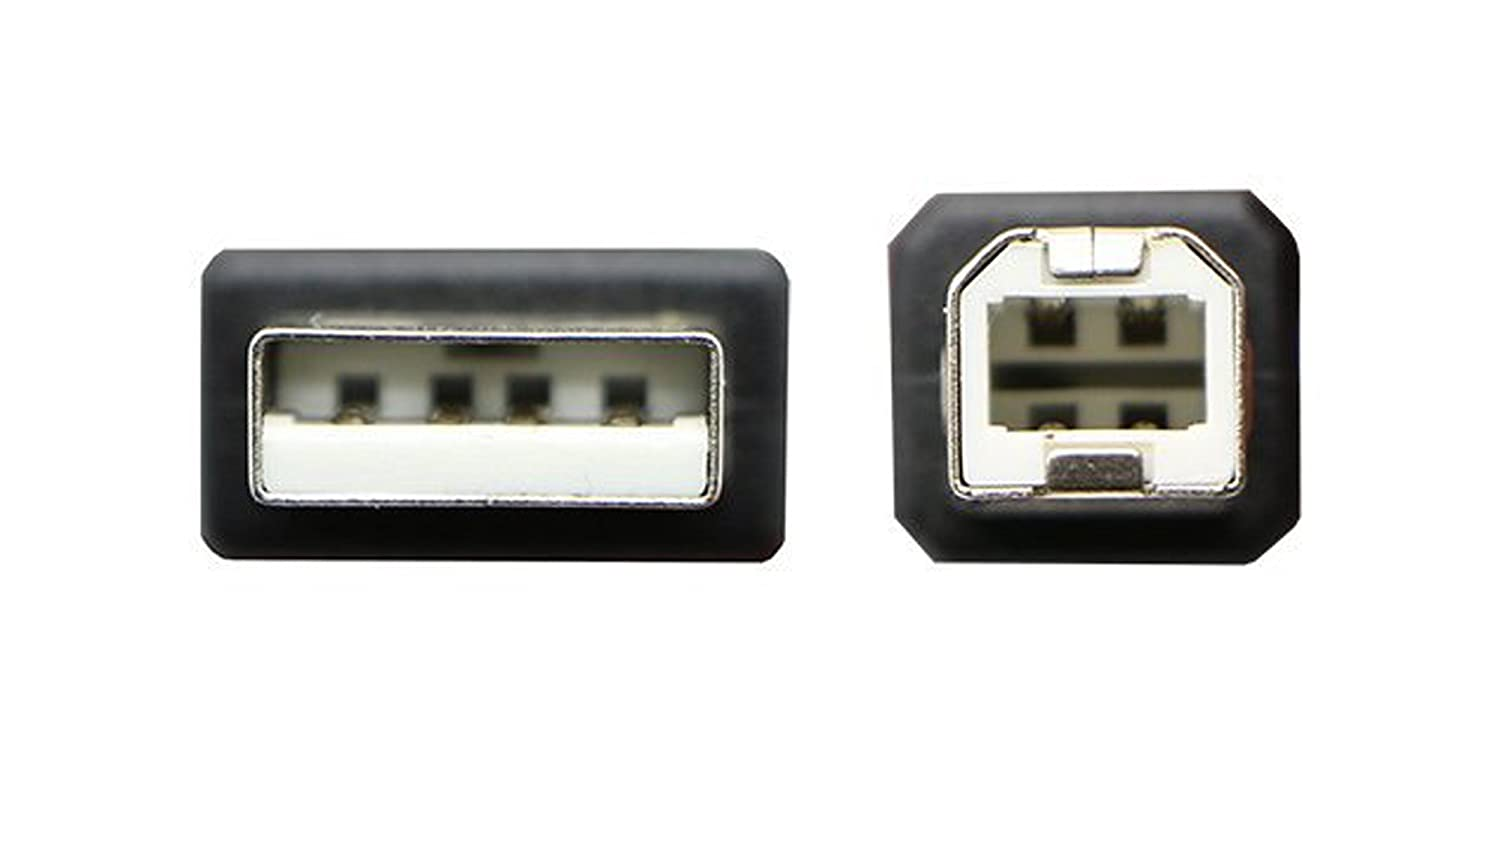 A-Male to B-Male for AKiTioThunder Dock - 10 FT//10 PACK//IVORY Specific Models Only Huetron TM USB 2.0 Cable